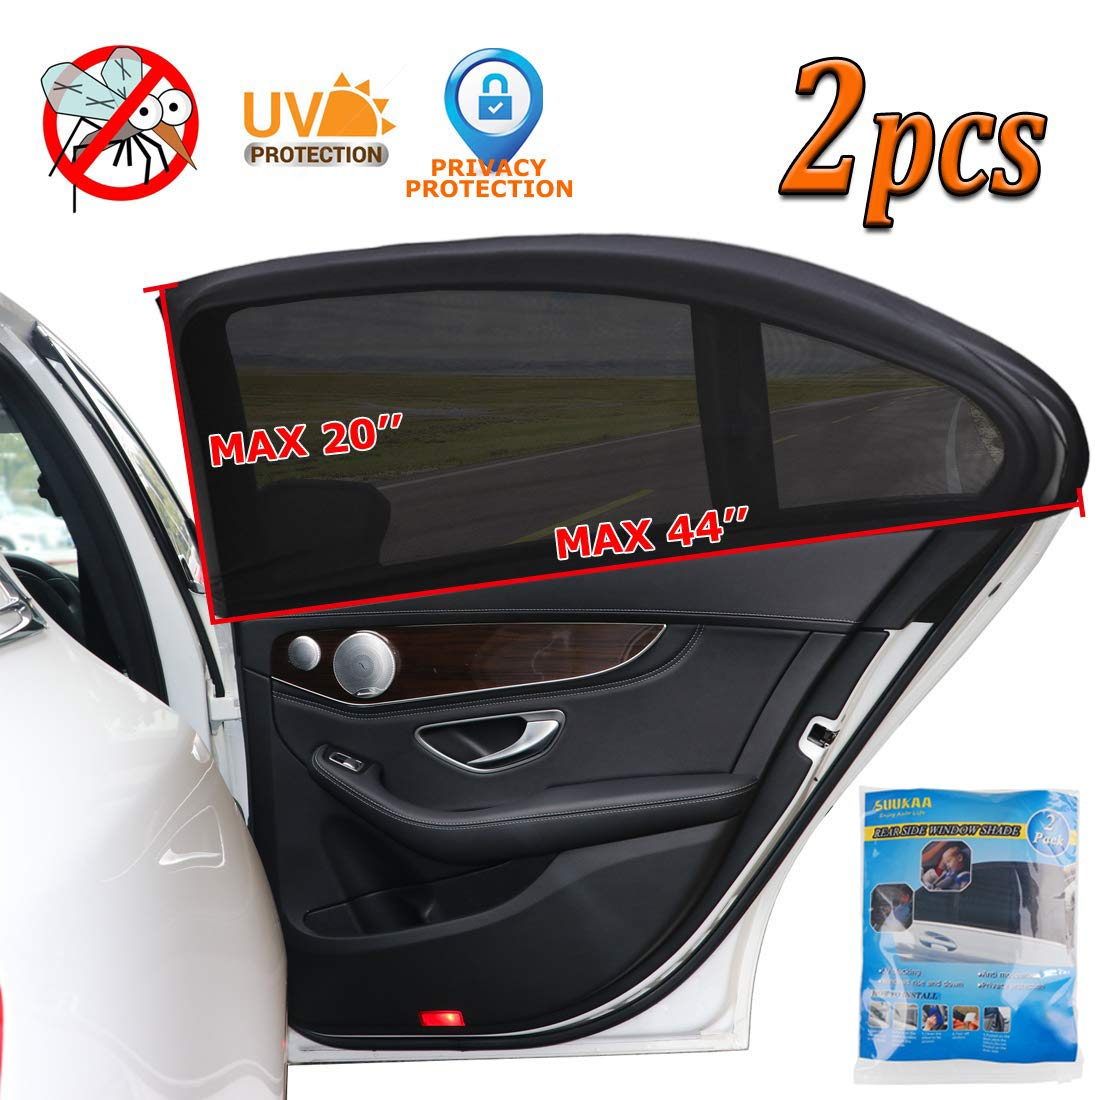 Car Sunroof Sunshade with Carry Bag Magnetic Installation Sunroof Mosquito-Net for Anti-Bugs Black Block The UV